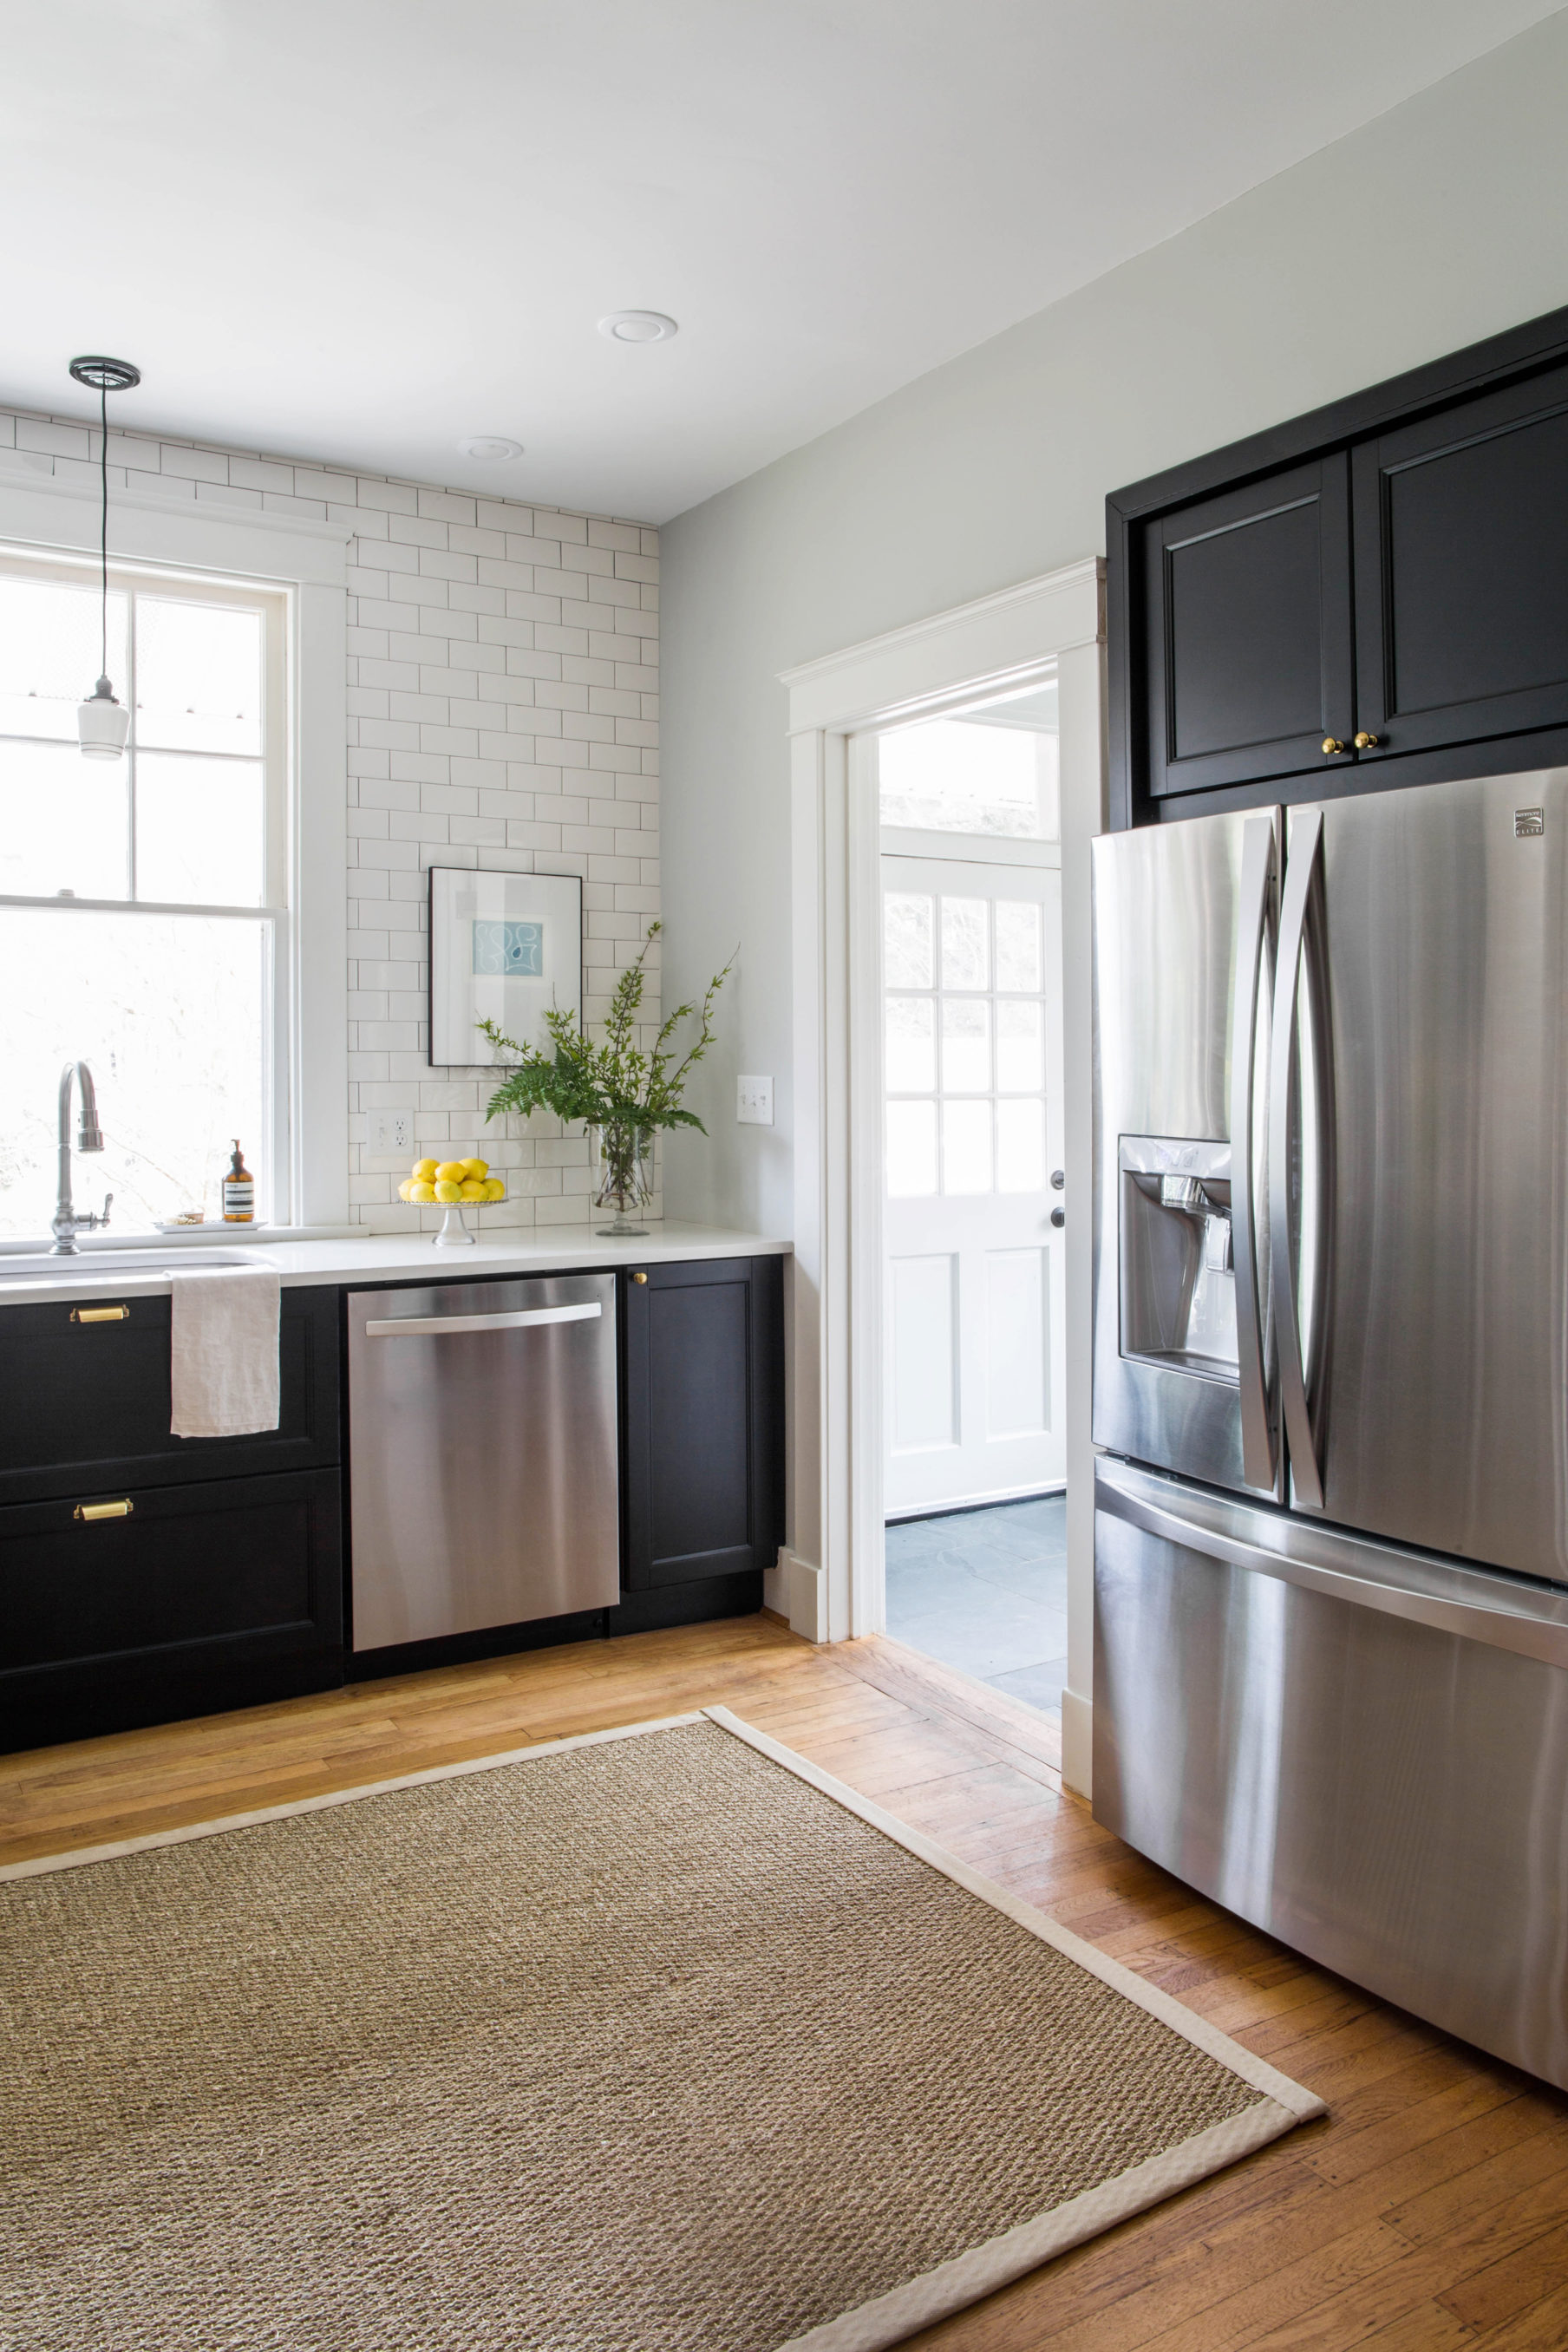 Kitchen Design Store Knoxville Tn A Kitchen And Breakfast Nook With Open Door Architecture The Happy